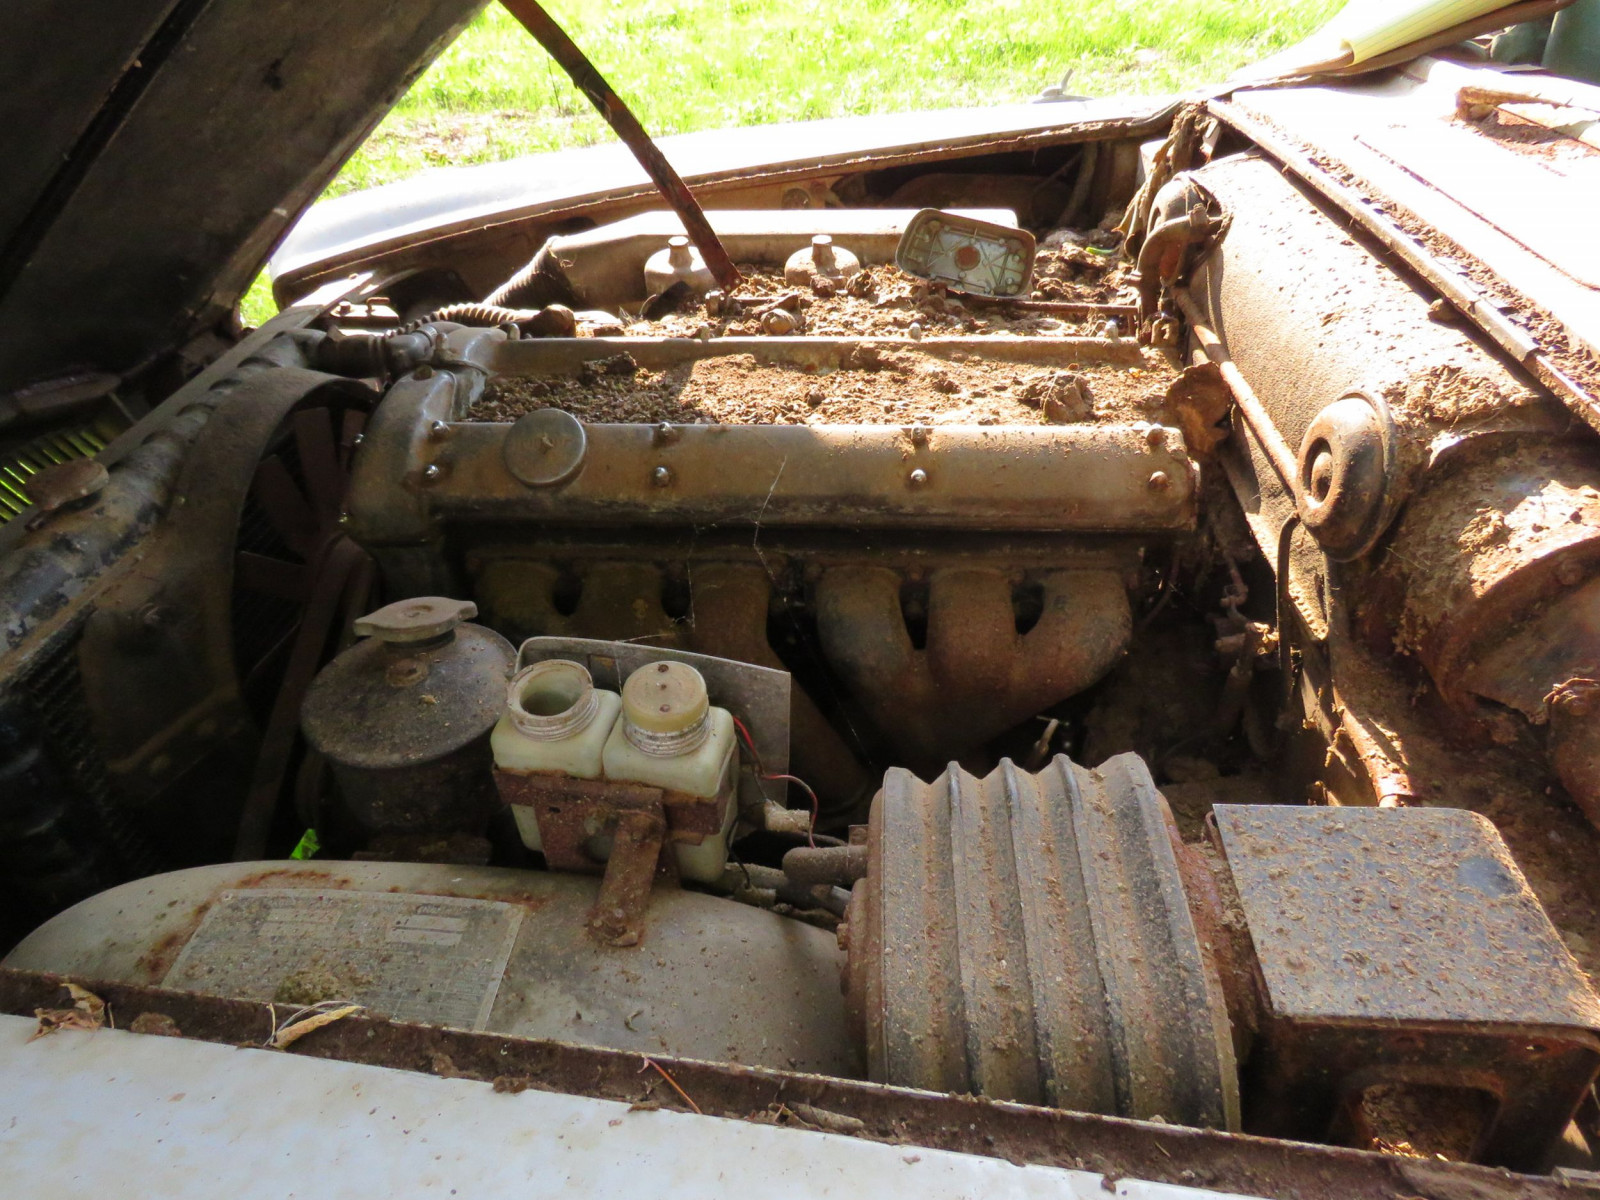 1965 Jaguar Mark X 4dr Sedan Project - Image 7